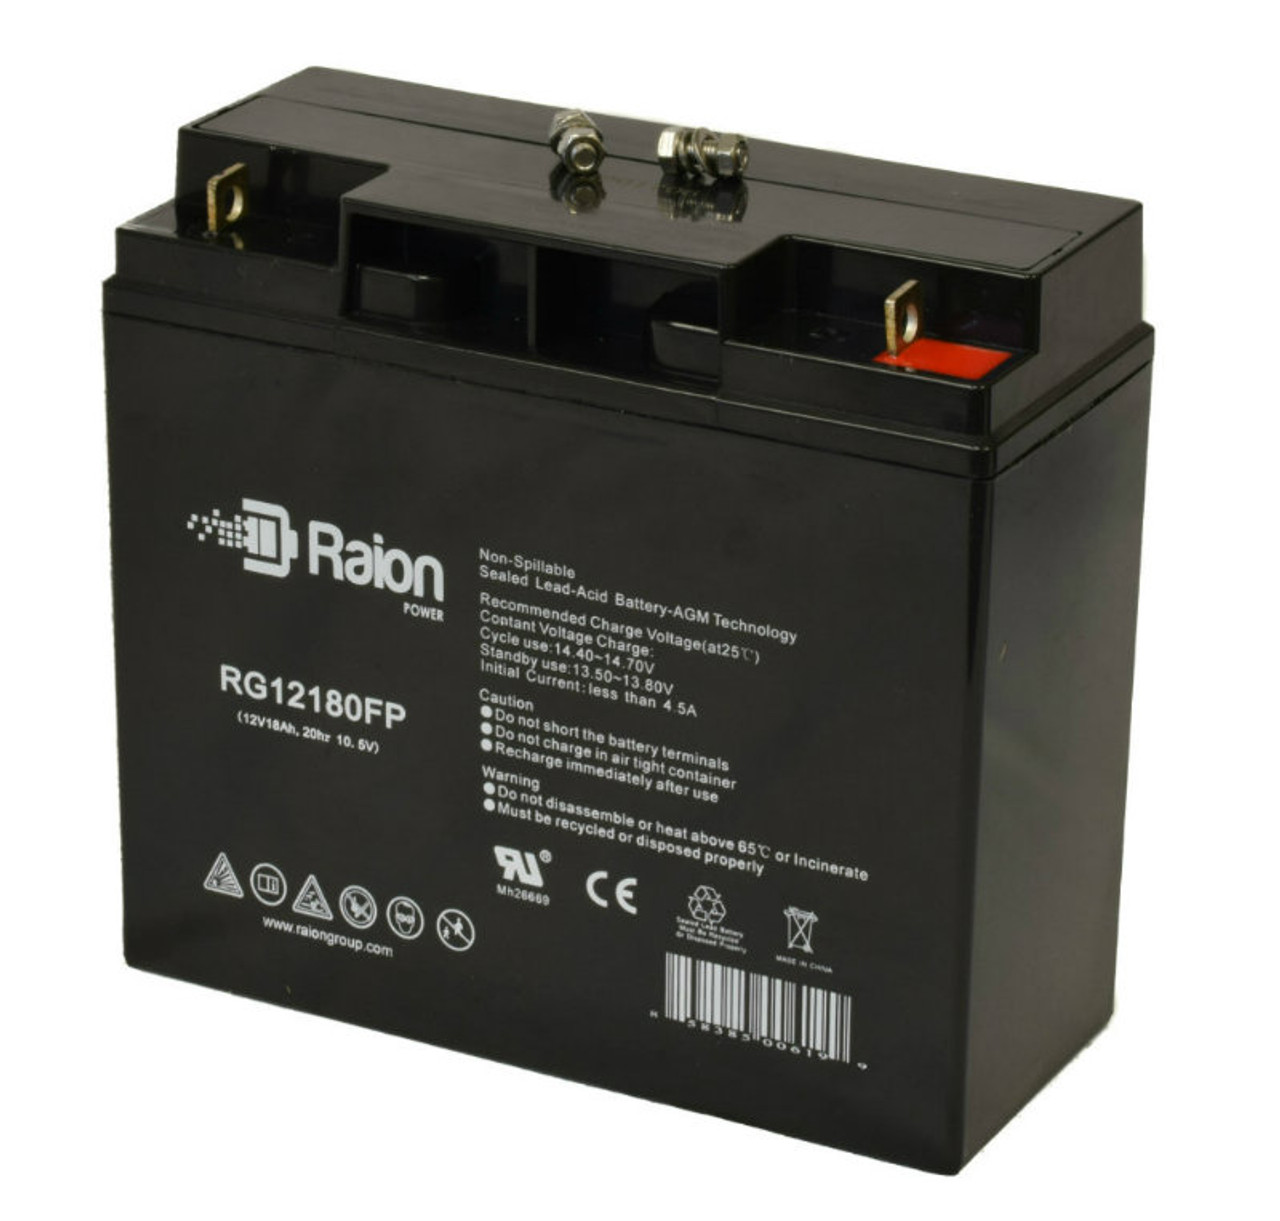 Raion Power RG12180FP Replacement Battery For Pride Rally Mobility Scooter